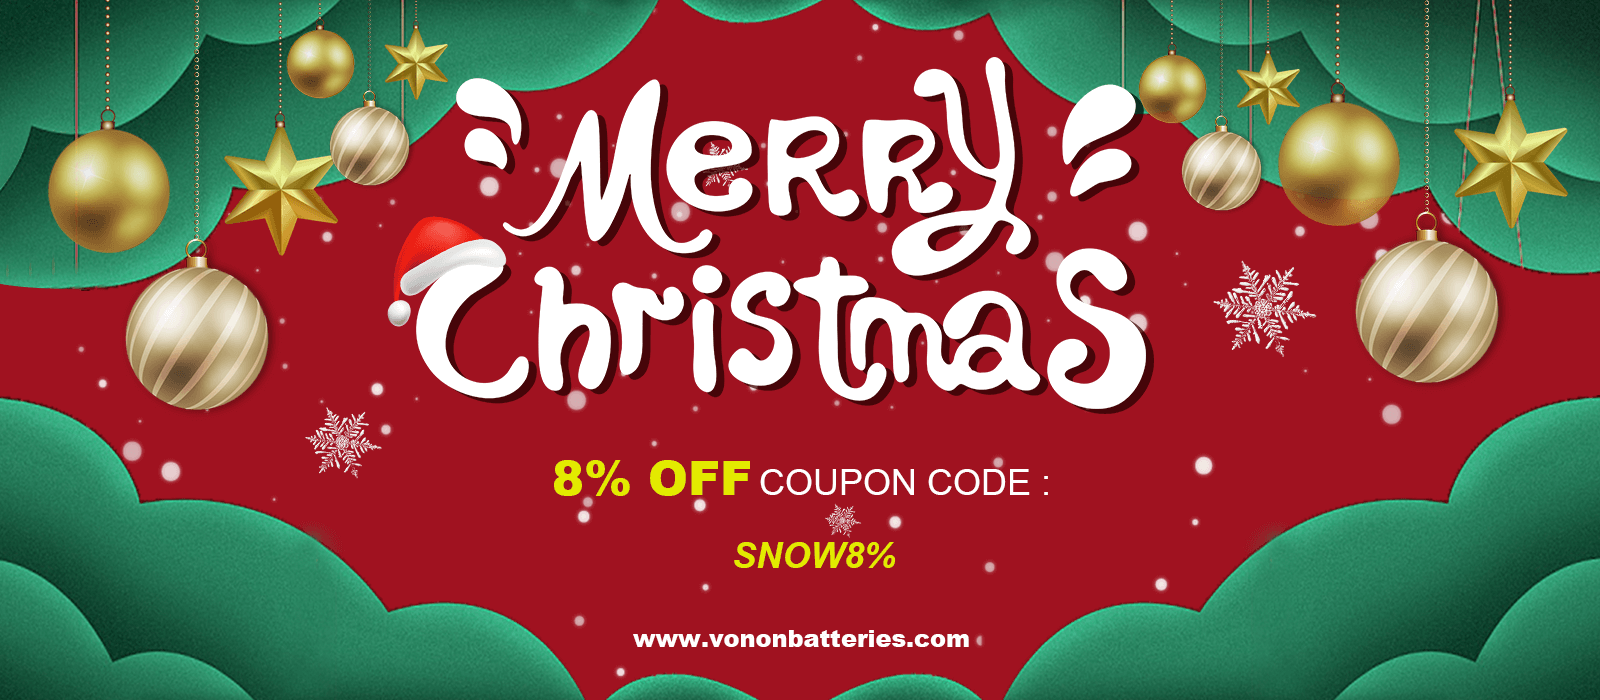 Christmas Offers - Vanon Batteries Coupon Codes and Coupons